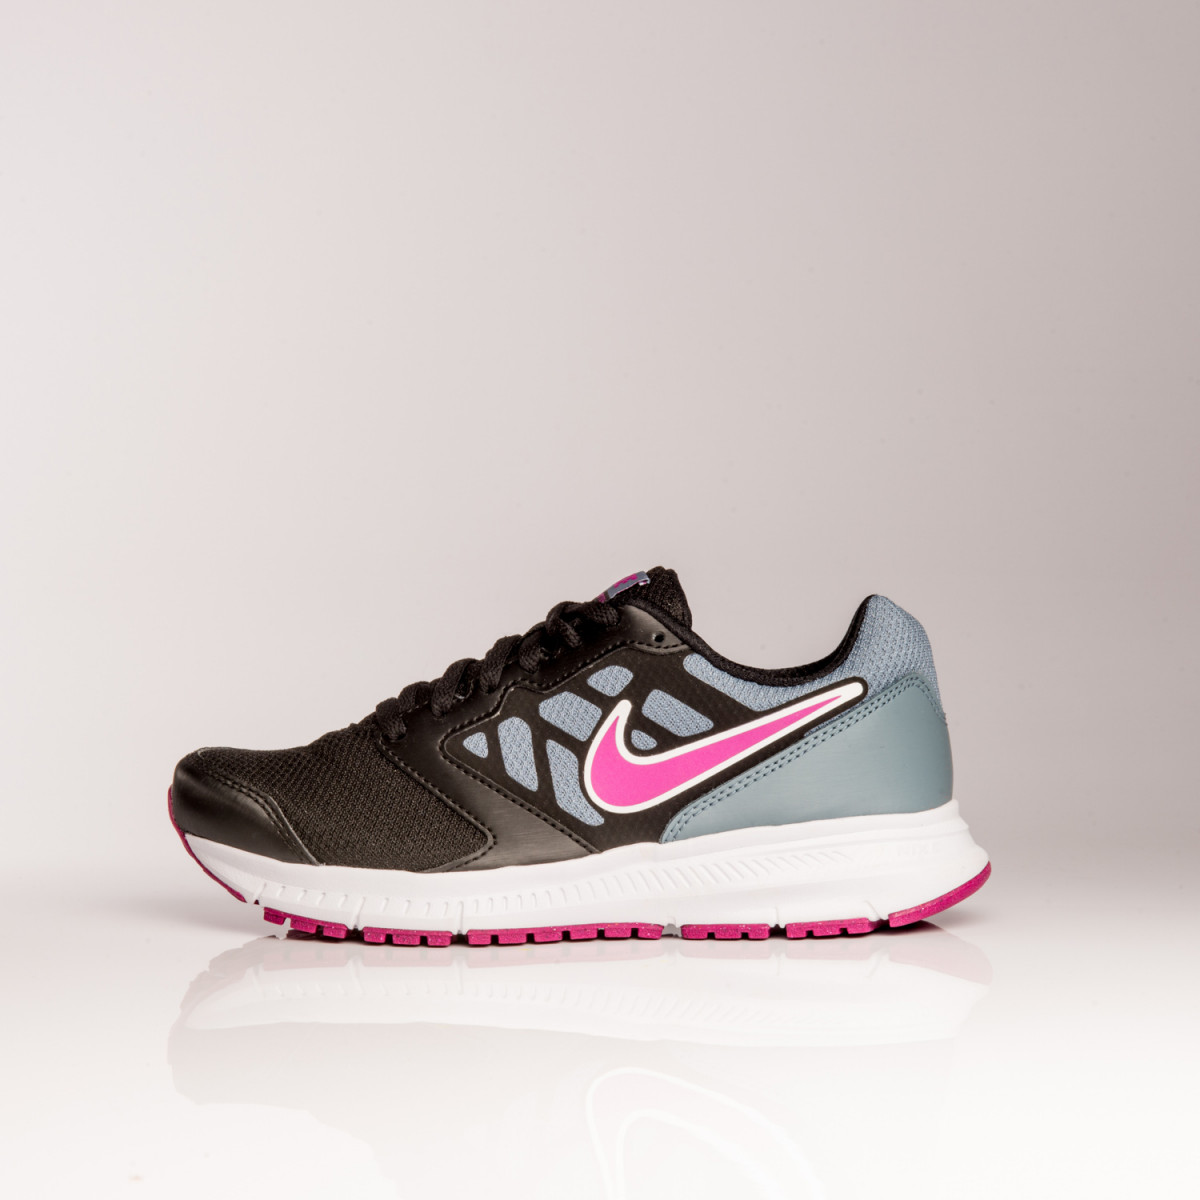 Zapatillas Nike Downshifter 6 Msl